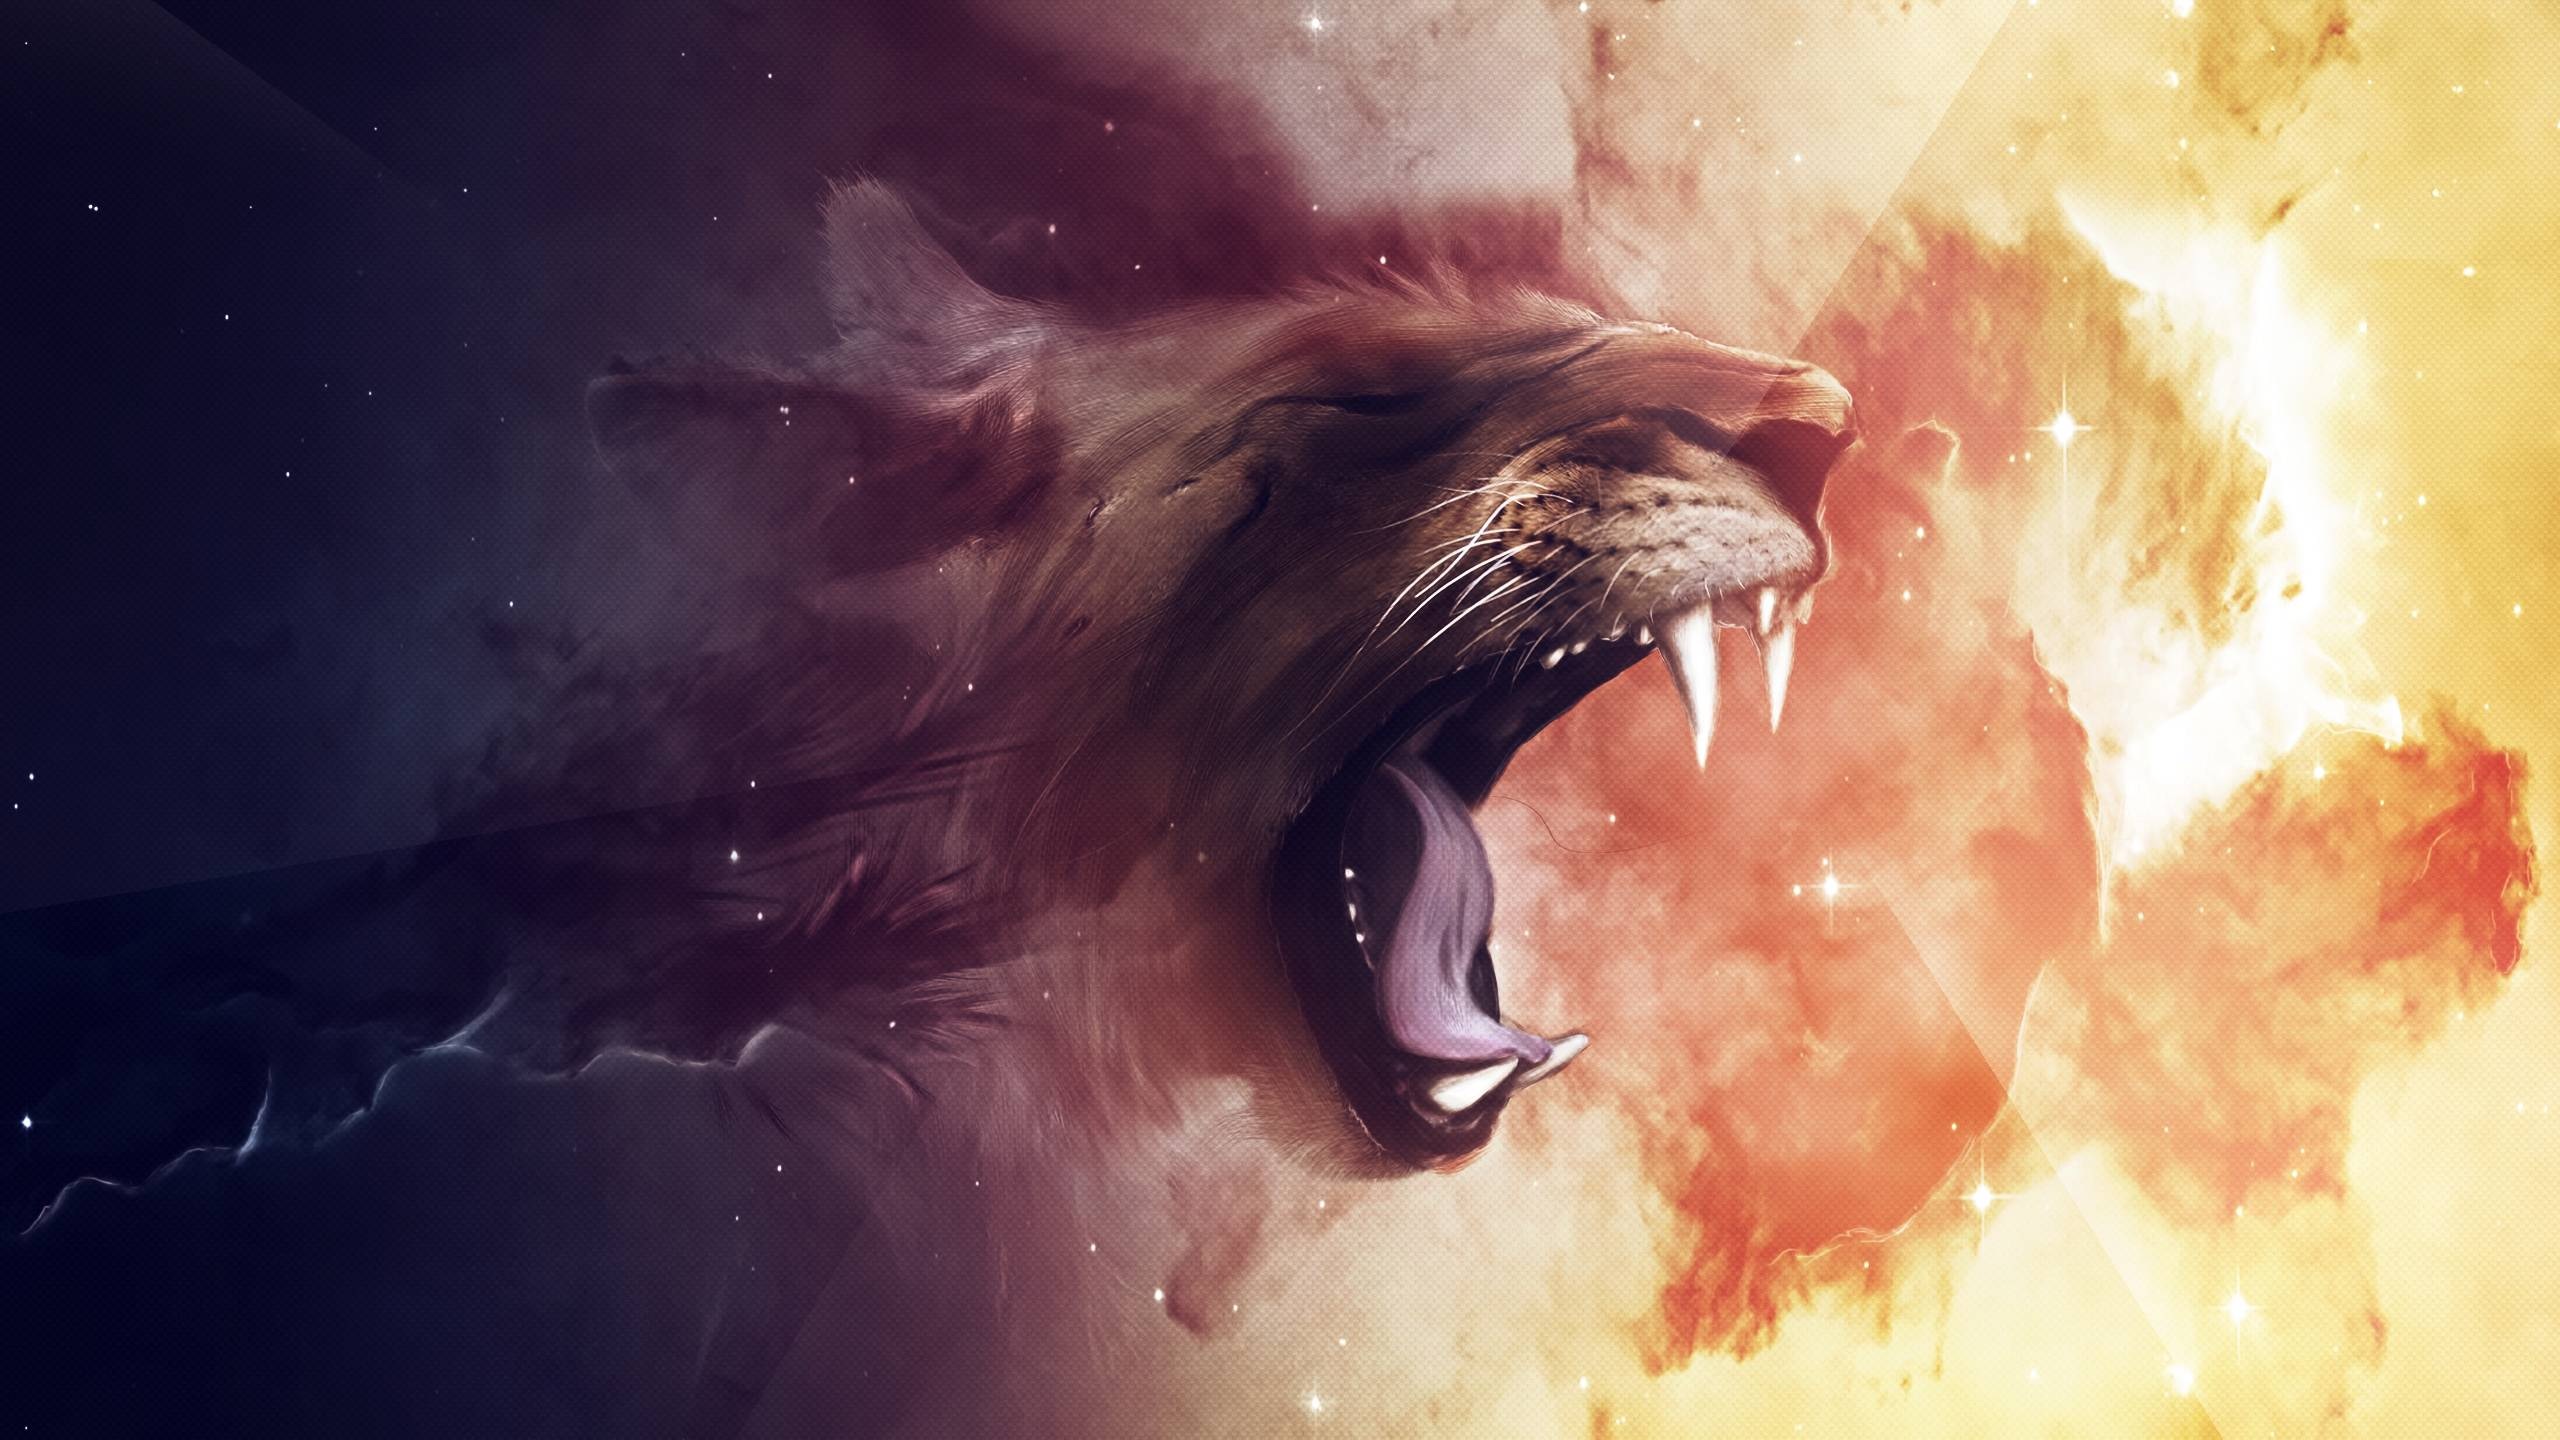 Lion Computer Wallpapers, Desktop Backgrounds 2560x1440 Id: 323327